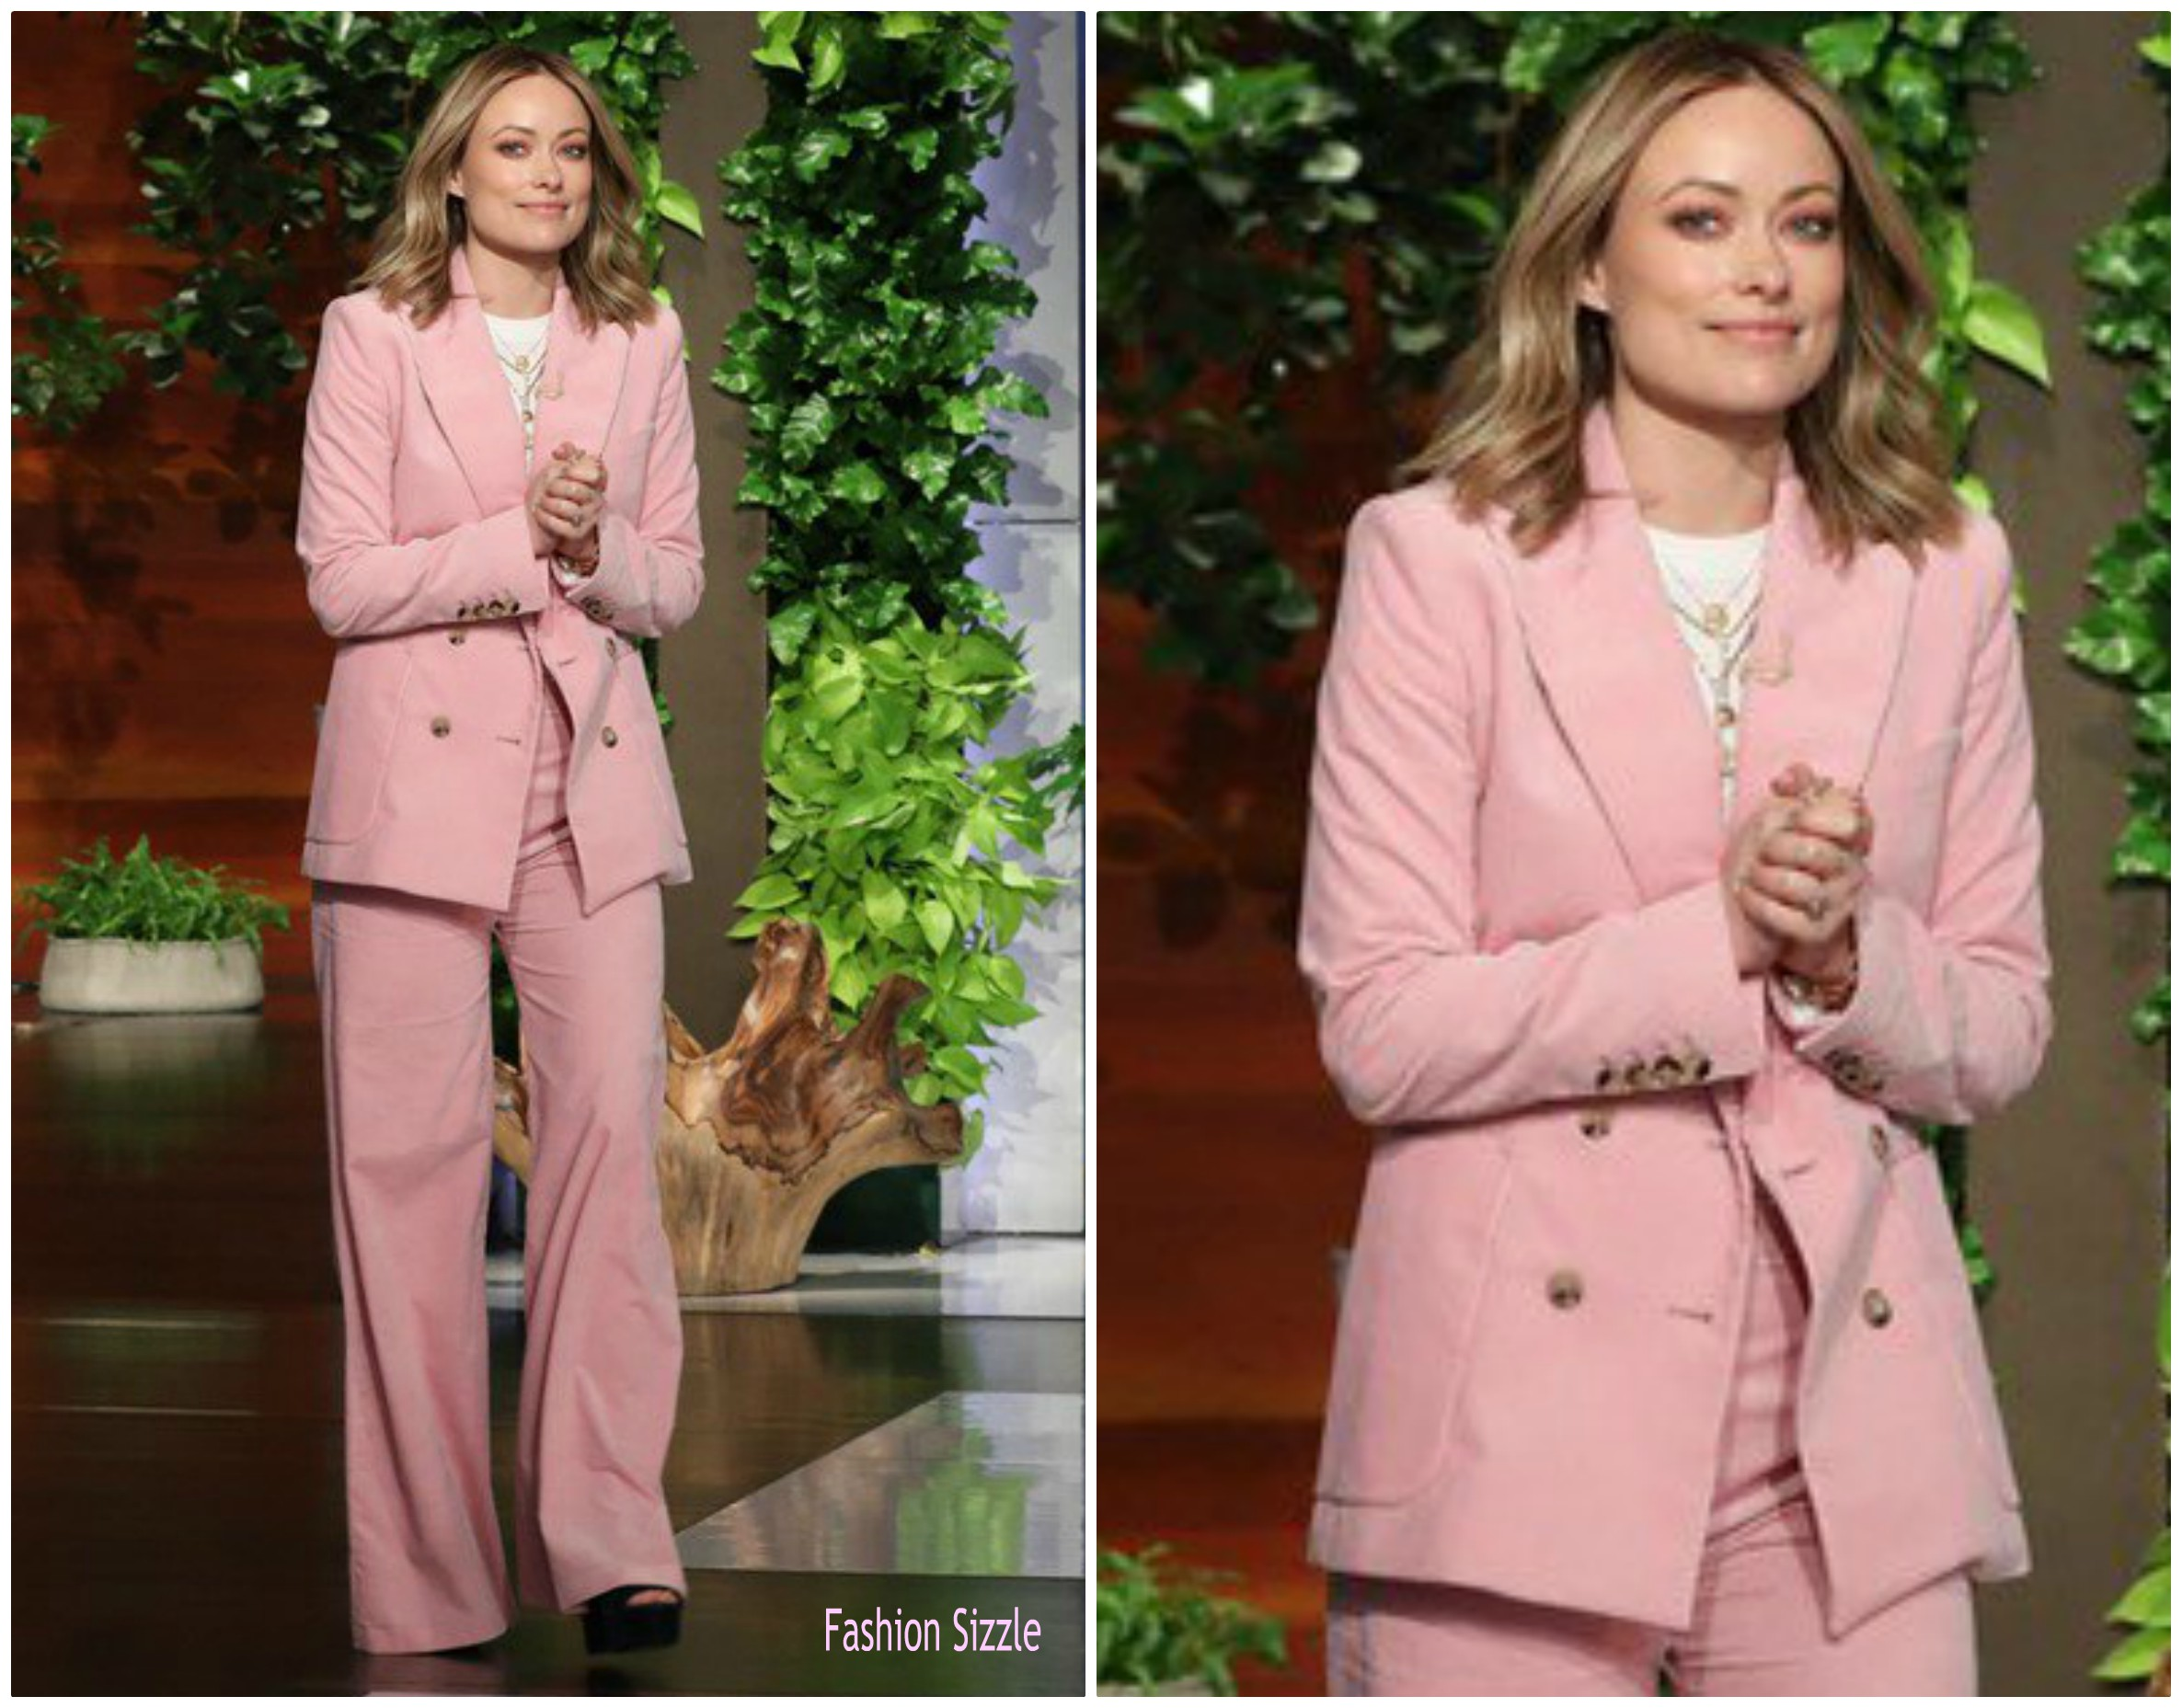 Olivia Wilde In Bella Freud The Ellen Degeneres Show Fashionsizzle